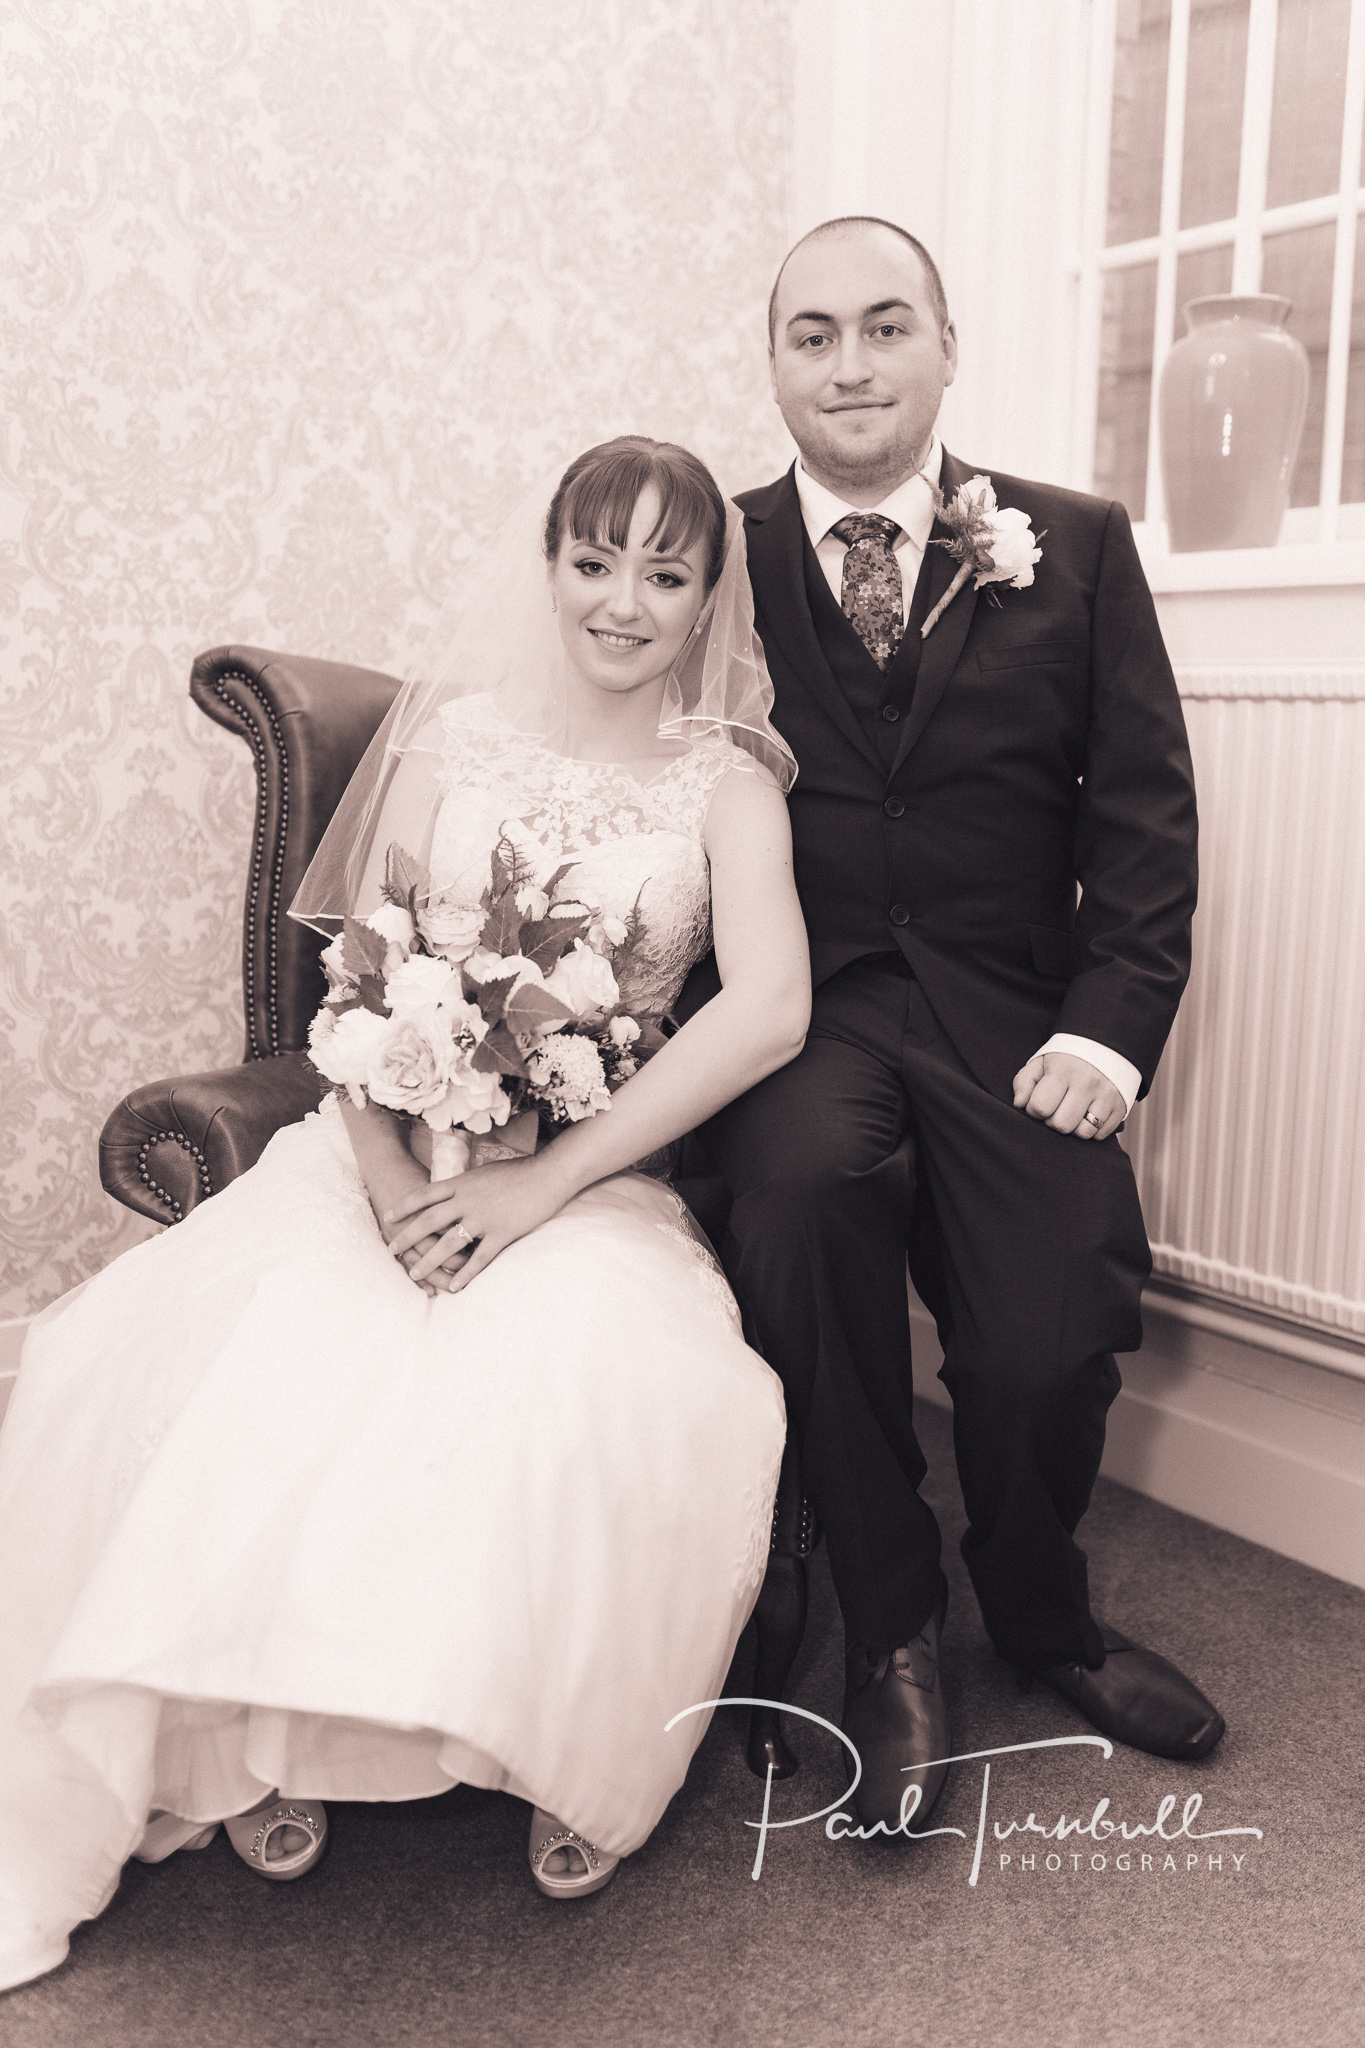 wedding-photographer-pontefract-yorkshire-laura-keanu-044.jpg